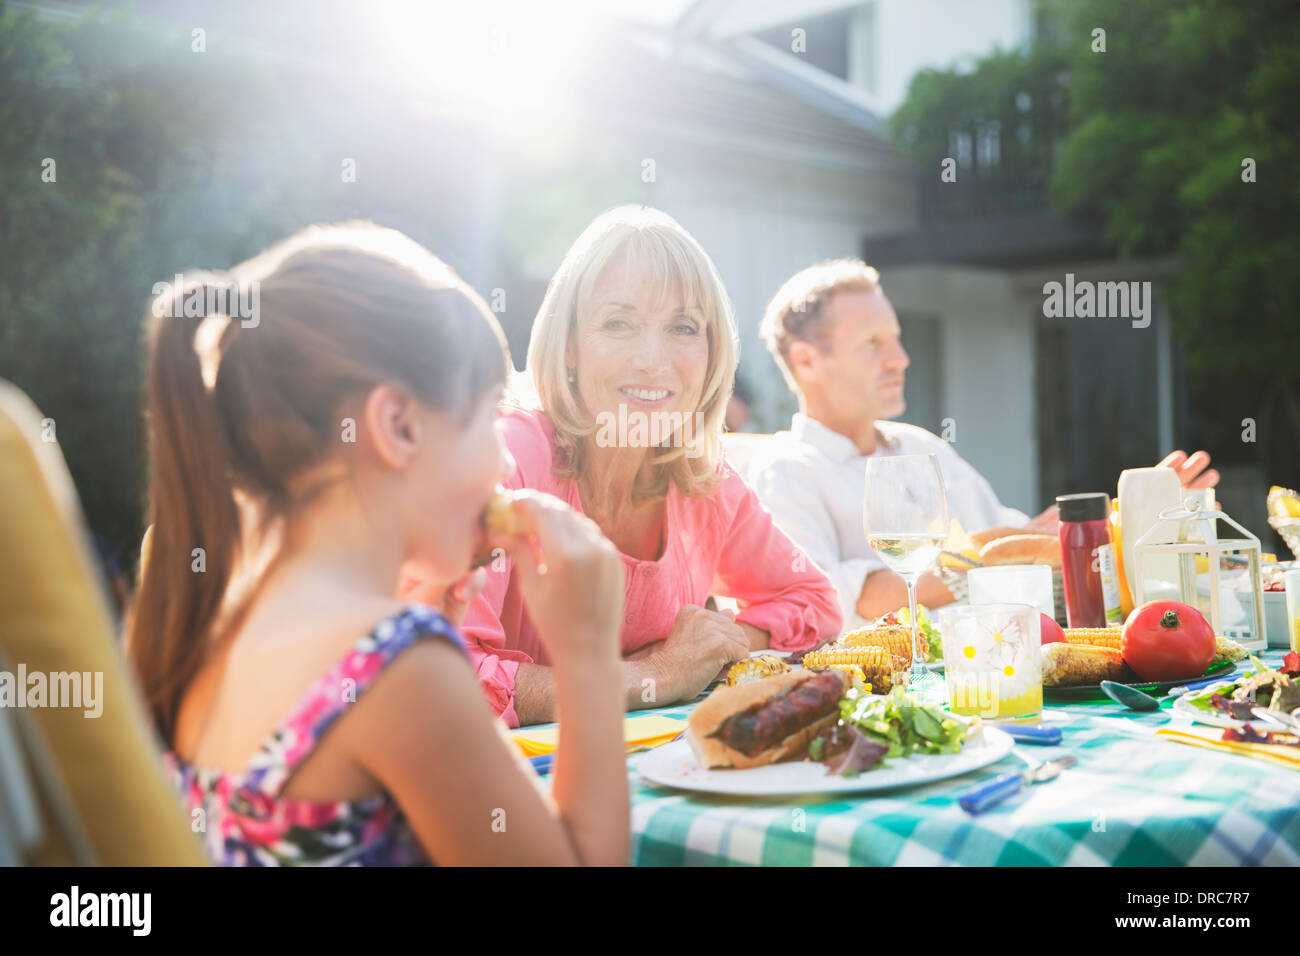 Family eating lunch at table patio Photo Stock